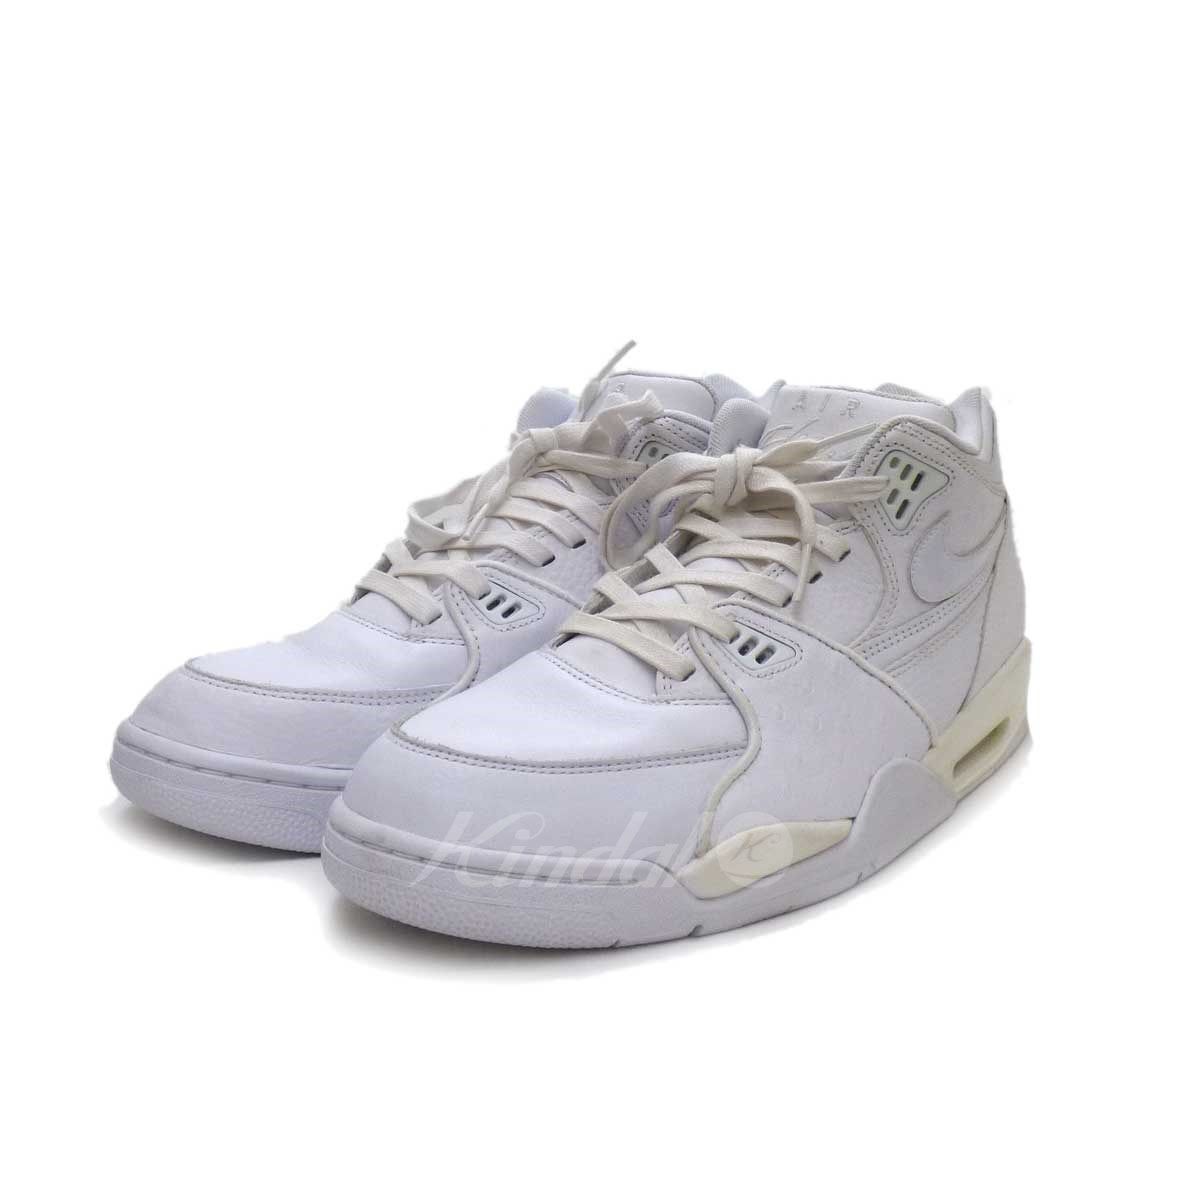 NIKE AIR FLIGHT 89 LE QS sneakers white size: 29. 5